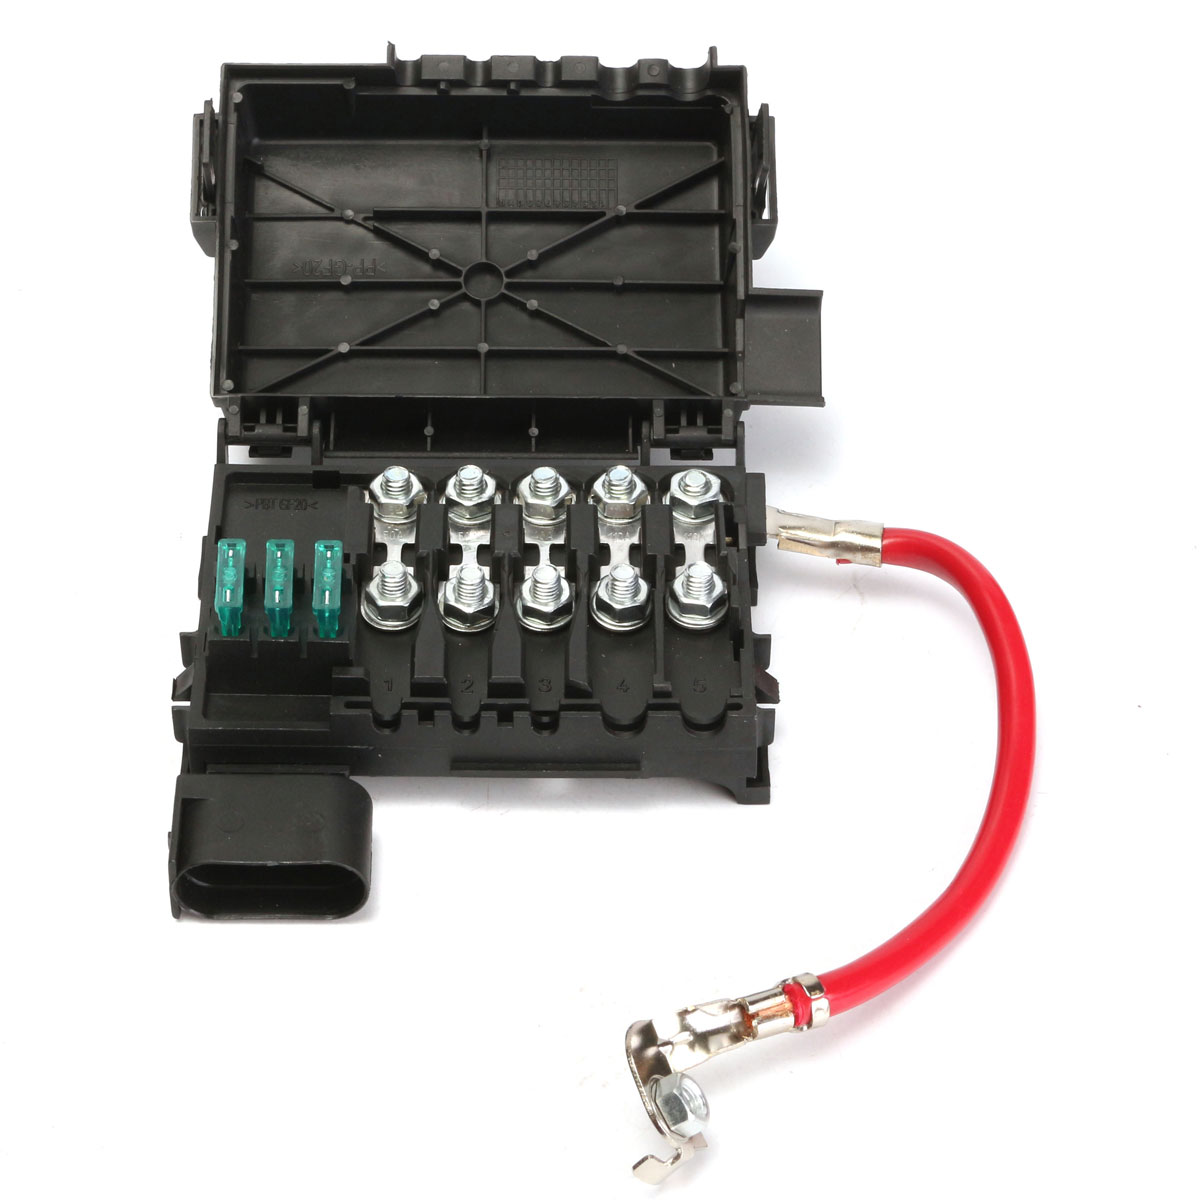 fuse box battery terminal insurance tablets for vw jetta golf mk4 jetta battery fuse box fuse [ 1200 x 1200 Pixel ]